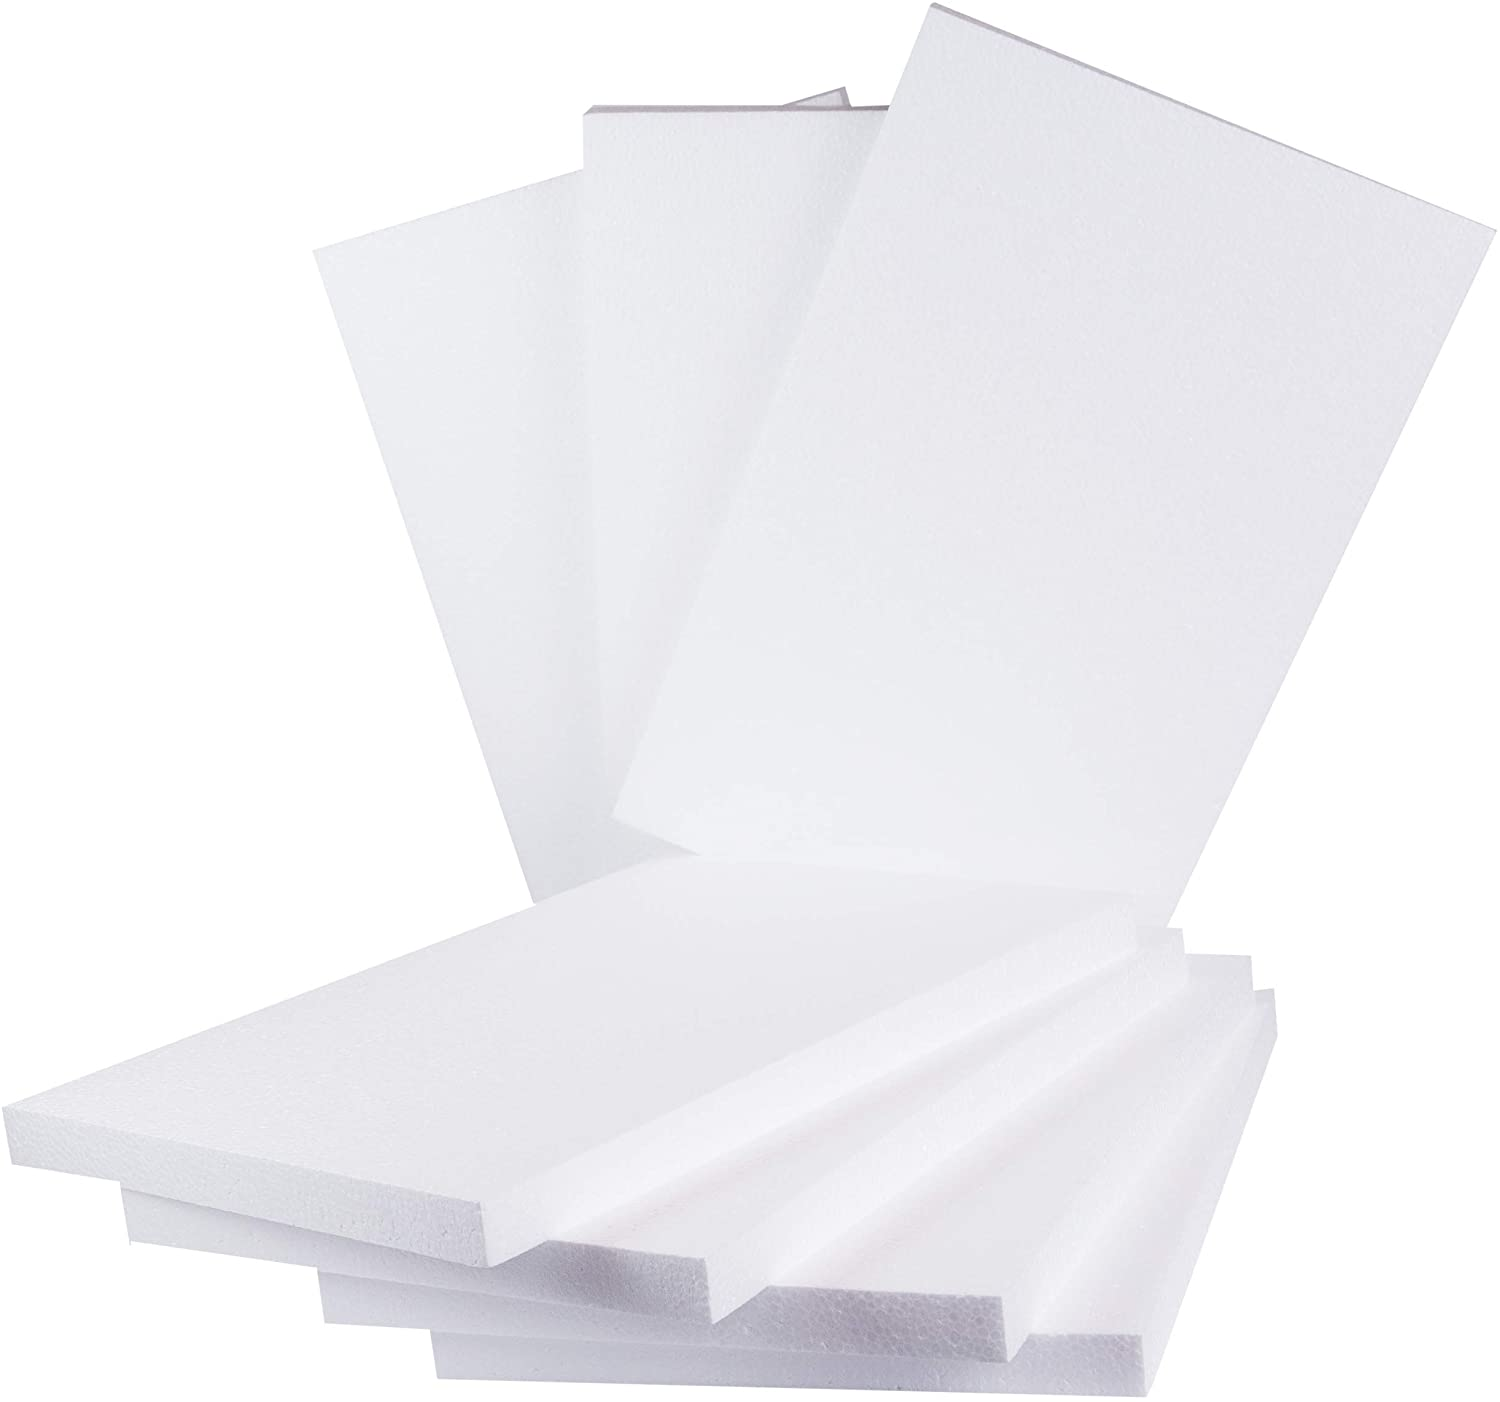 Silverlake Craft Foam Block - 7 Pack of 11x17x1 EPS Polystyrene Sheet for Crafting, Modeling, Art Projects and Floral Arrangements - Sculpting Panels for DIY School & Home Art Projects (7)